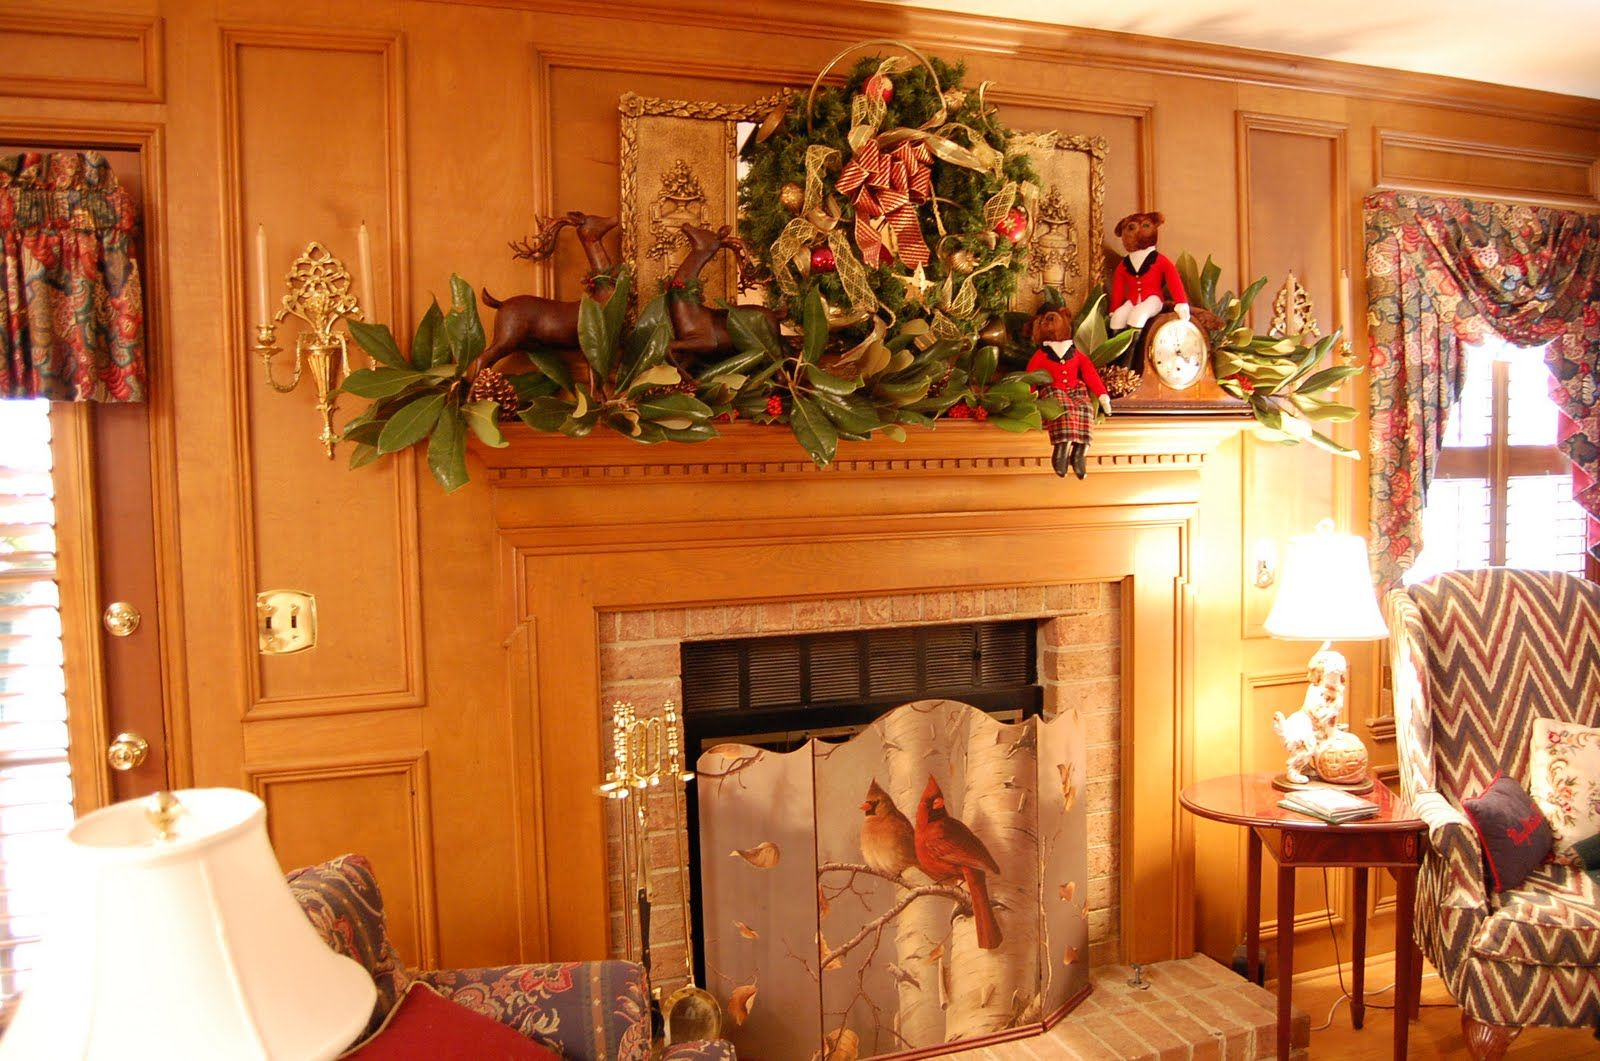 Fabulous Minimalist Greenery Fresh Garland Christmas Fireplace Mantel  Decoration With Cool Deers And Dolls, Fresh Pine Cones, And Nice Antique  Clock.